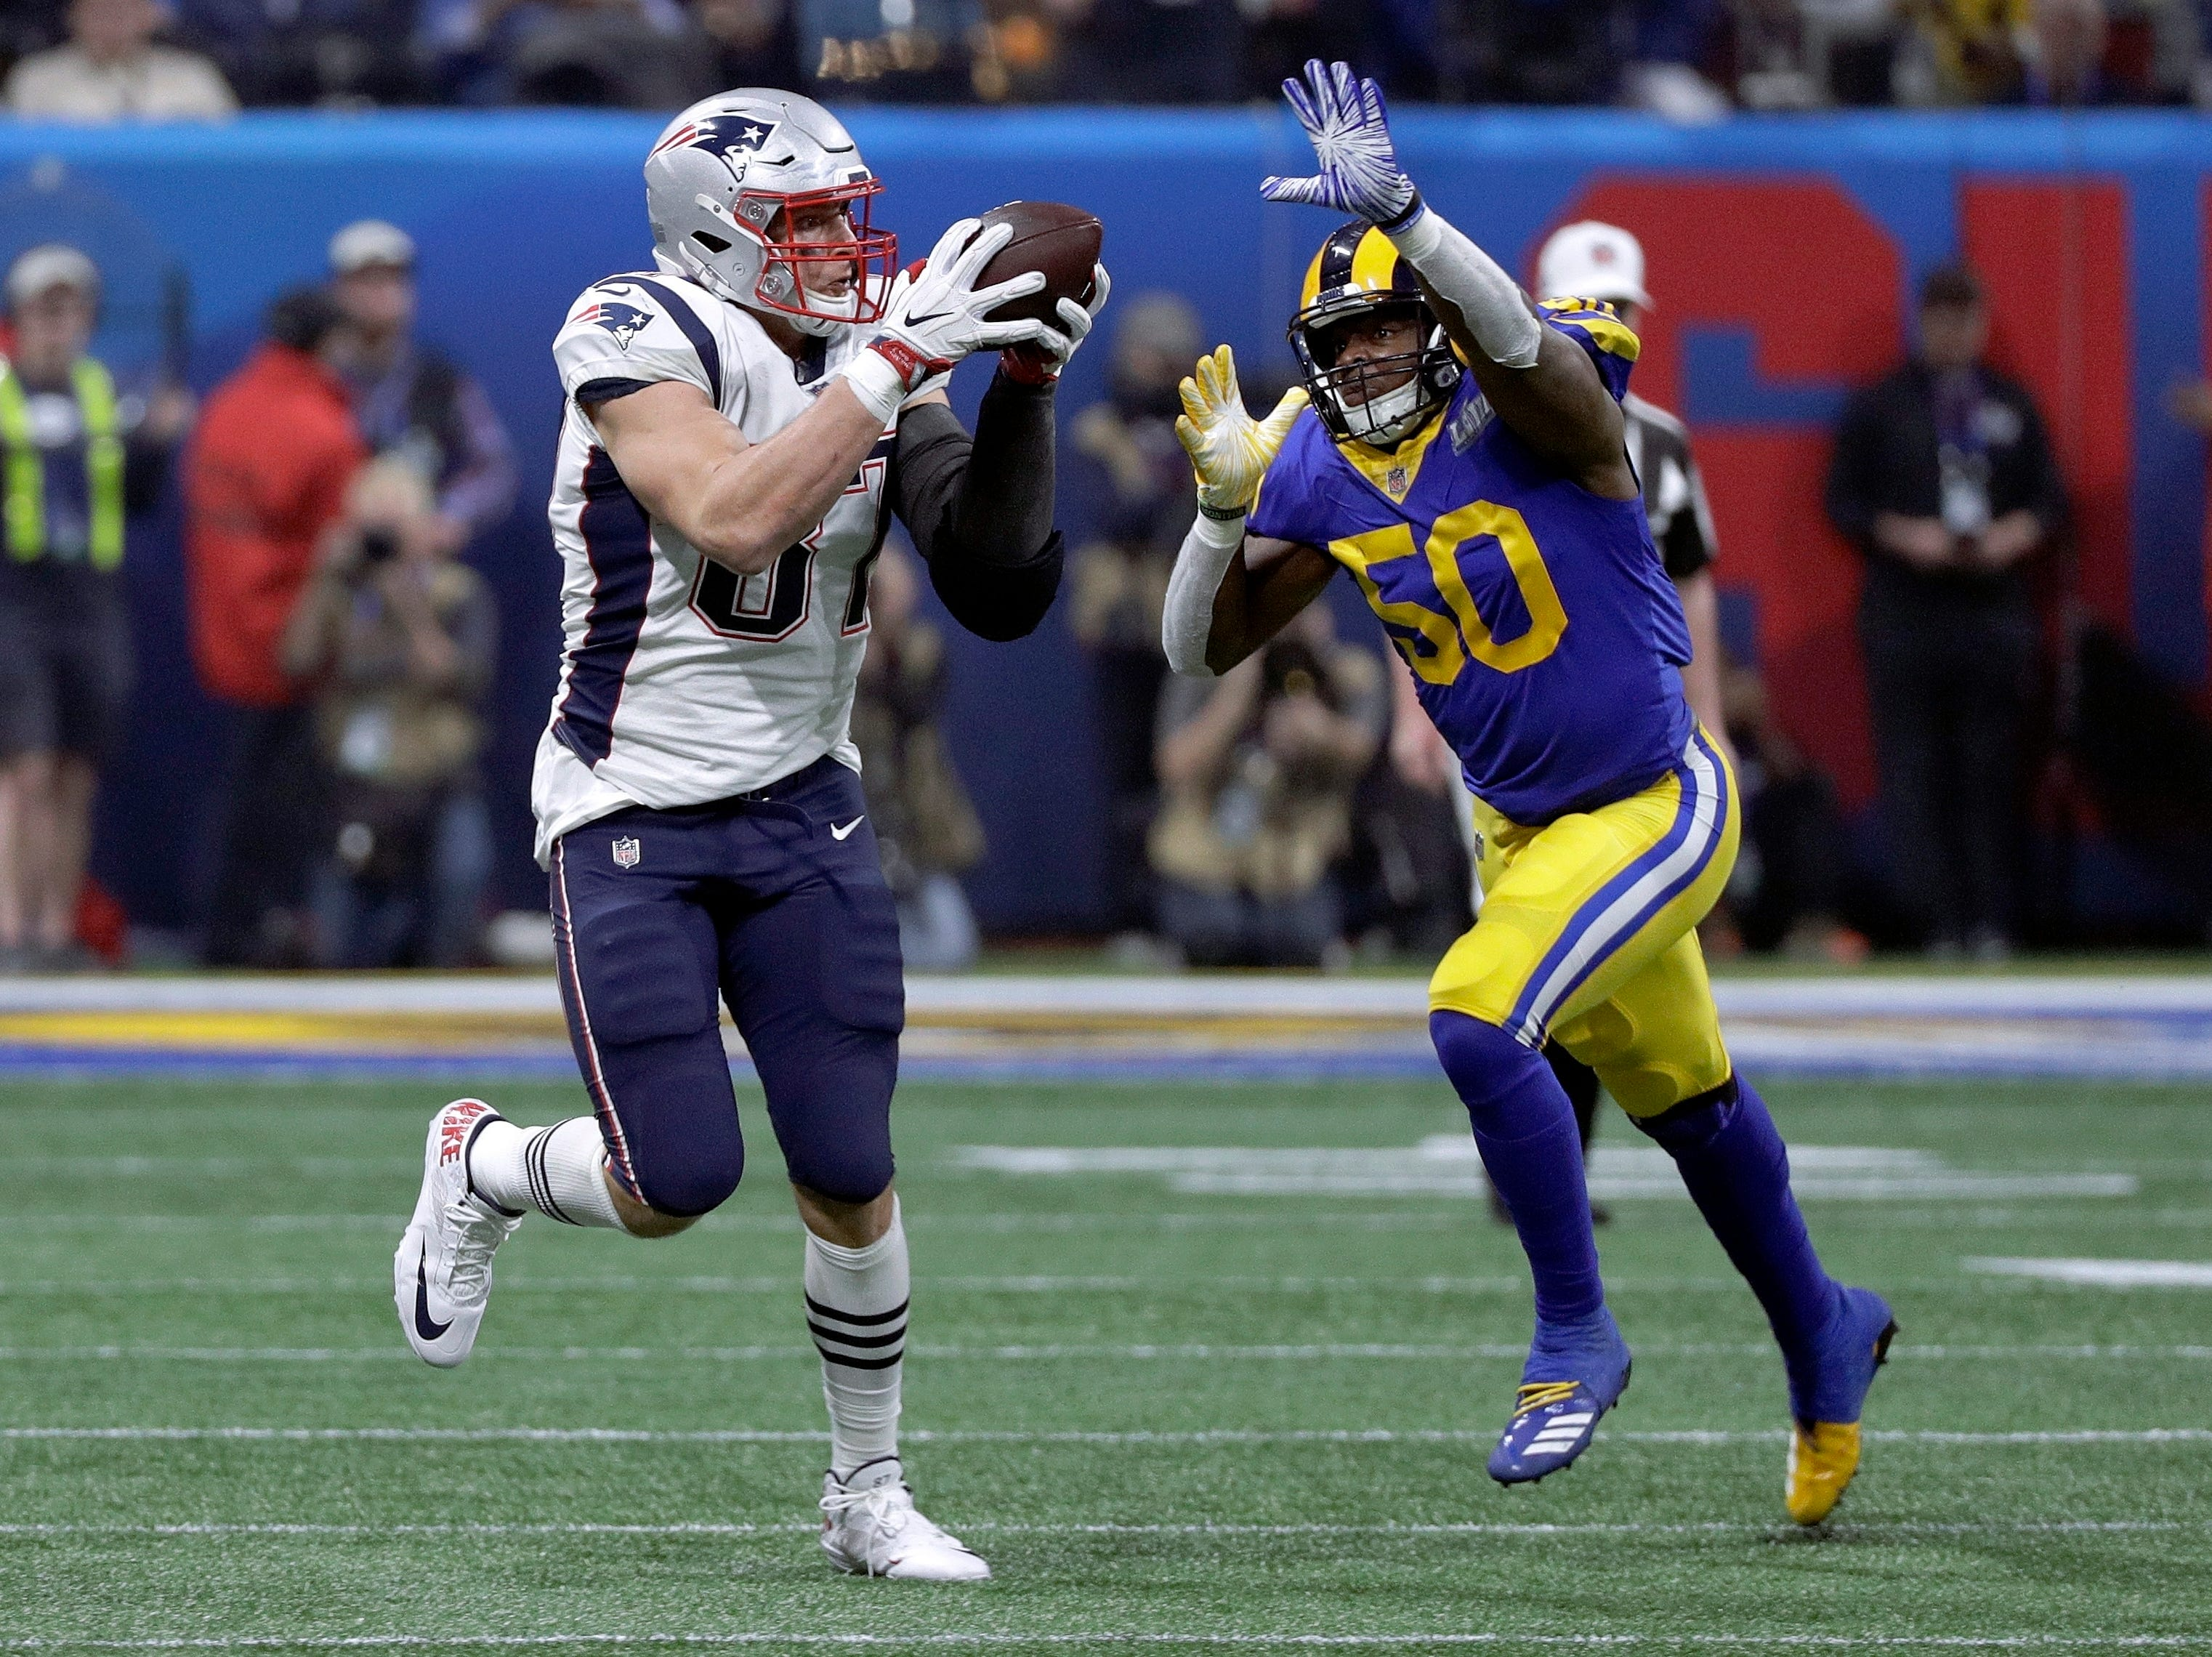 New England Patriots' Rob Gronkowski (87) catches a pass in front of Los Angeles Rams' Samson Ebukam (50) during the second half.